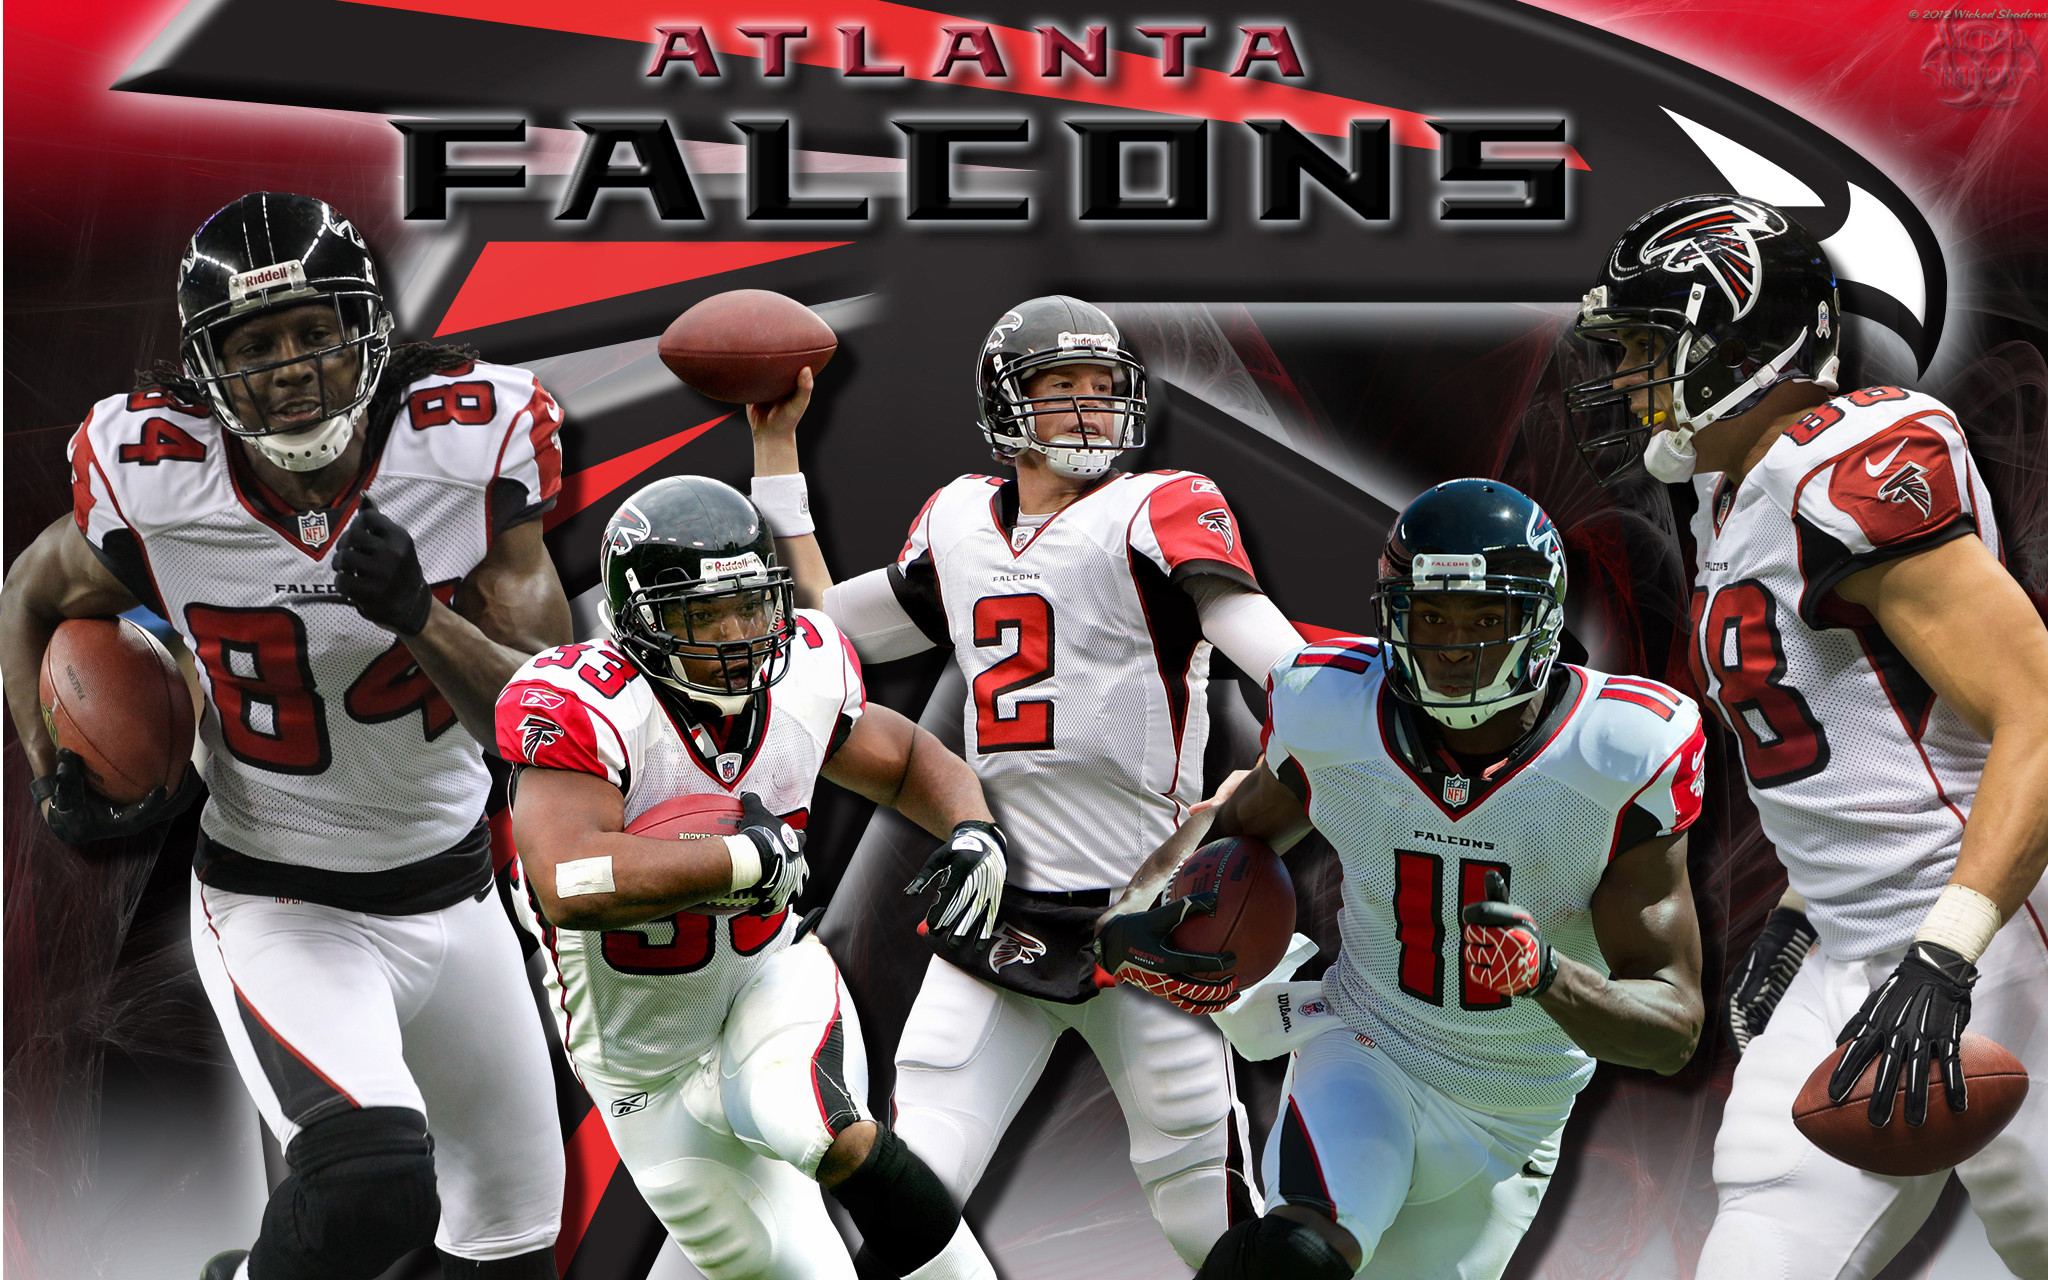 Atlanta Falcons Images: Atlanta Braves Wallpaper 2018 (55+ Images